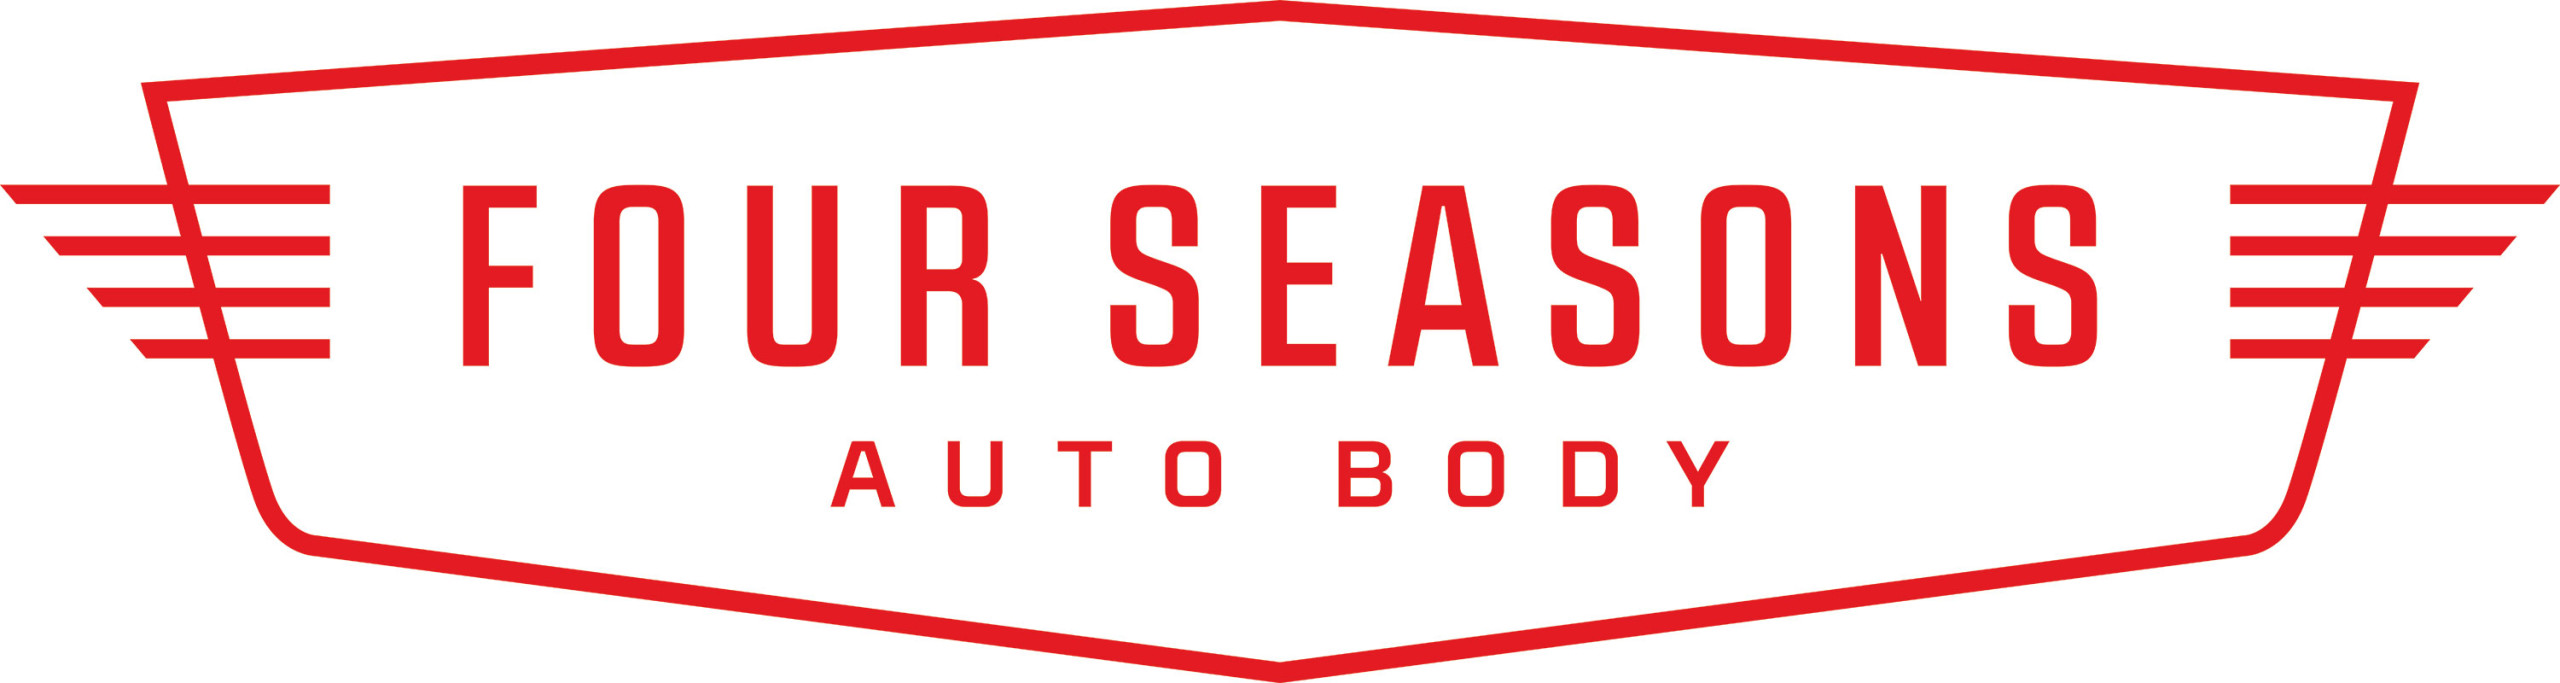 Four Seasons Autobody